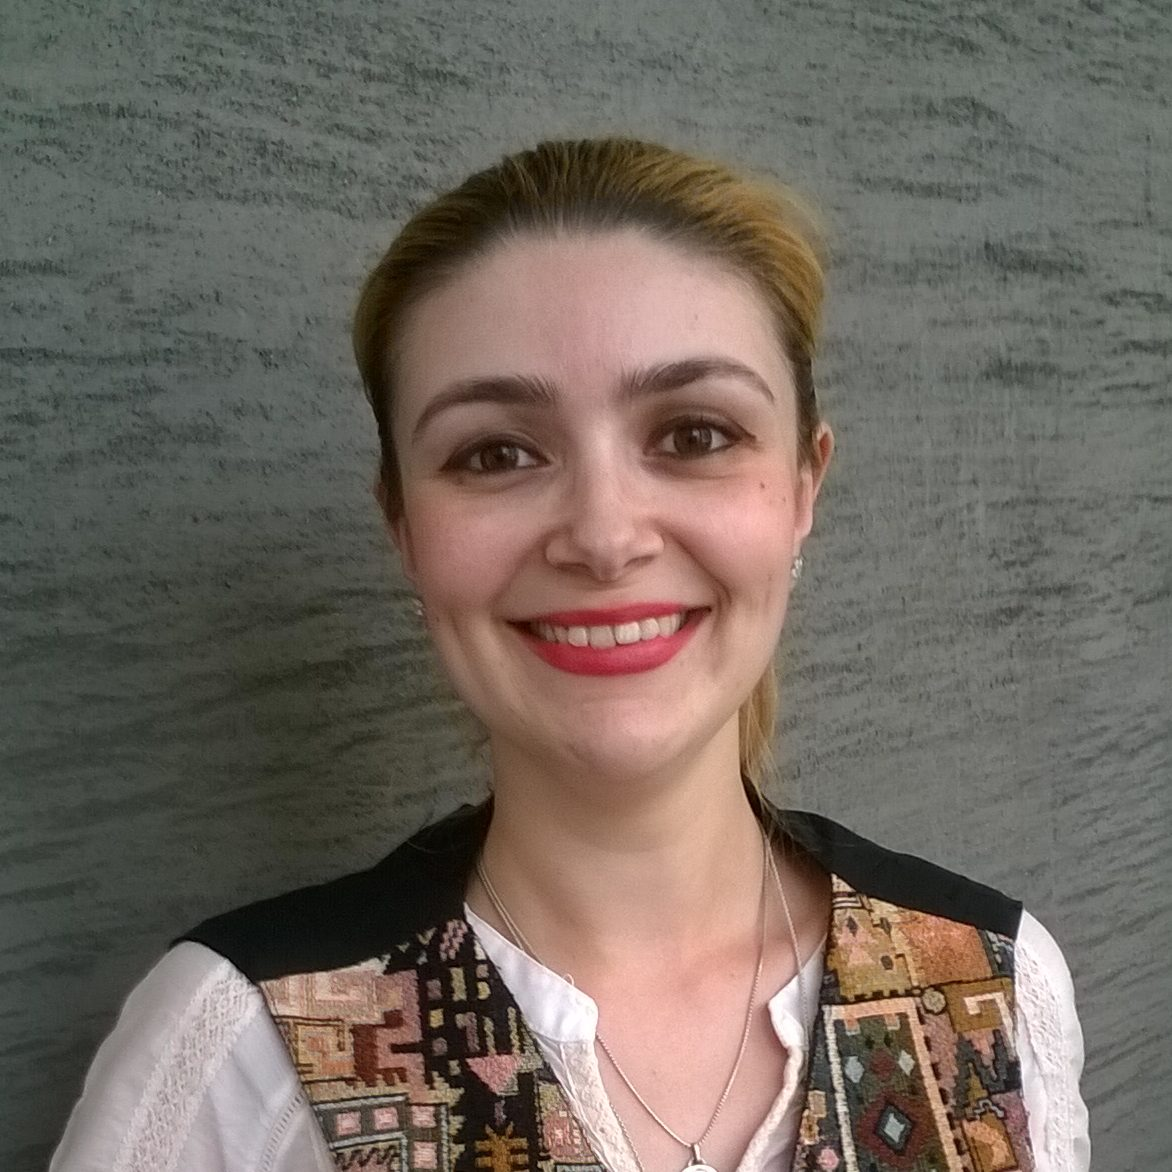 Ana-Maria Patroi, Architect, Arcadia Engineering, Romania